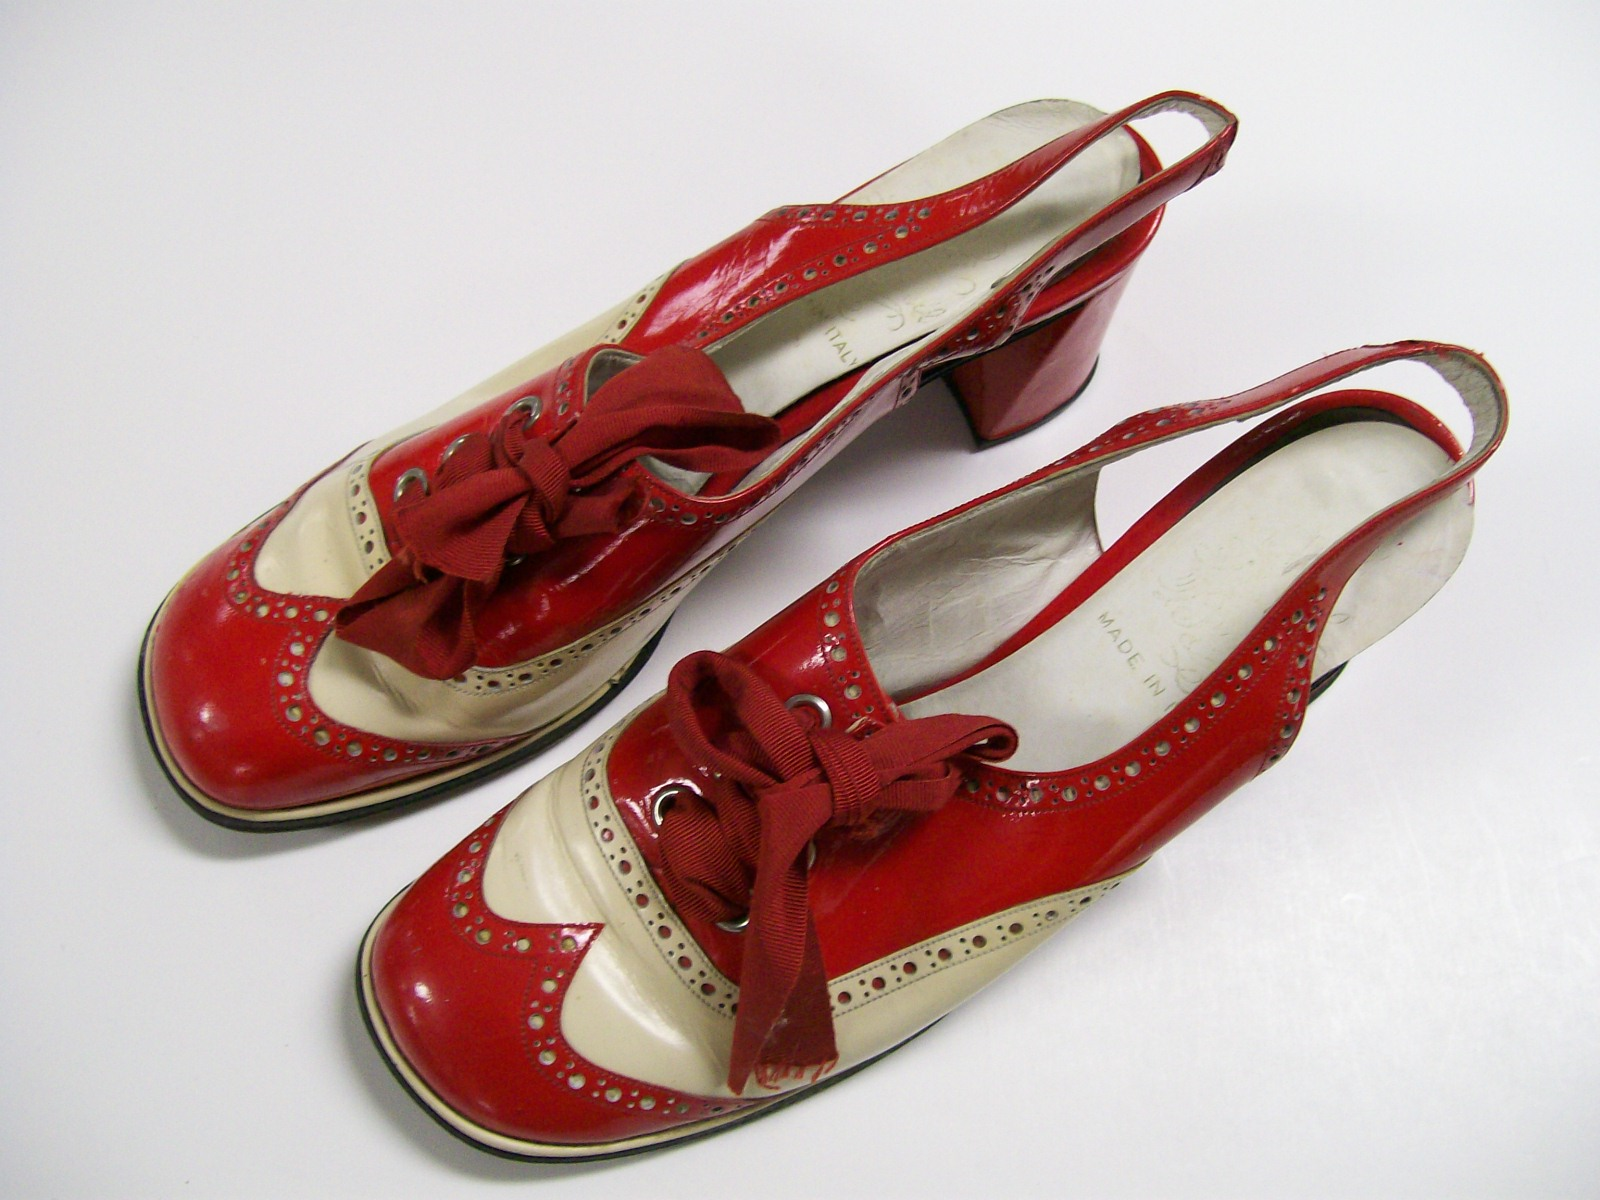 Mamie Van Doren Red & White Designer Shoes Made In Italy